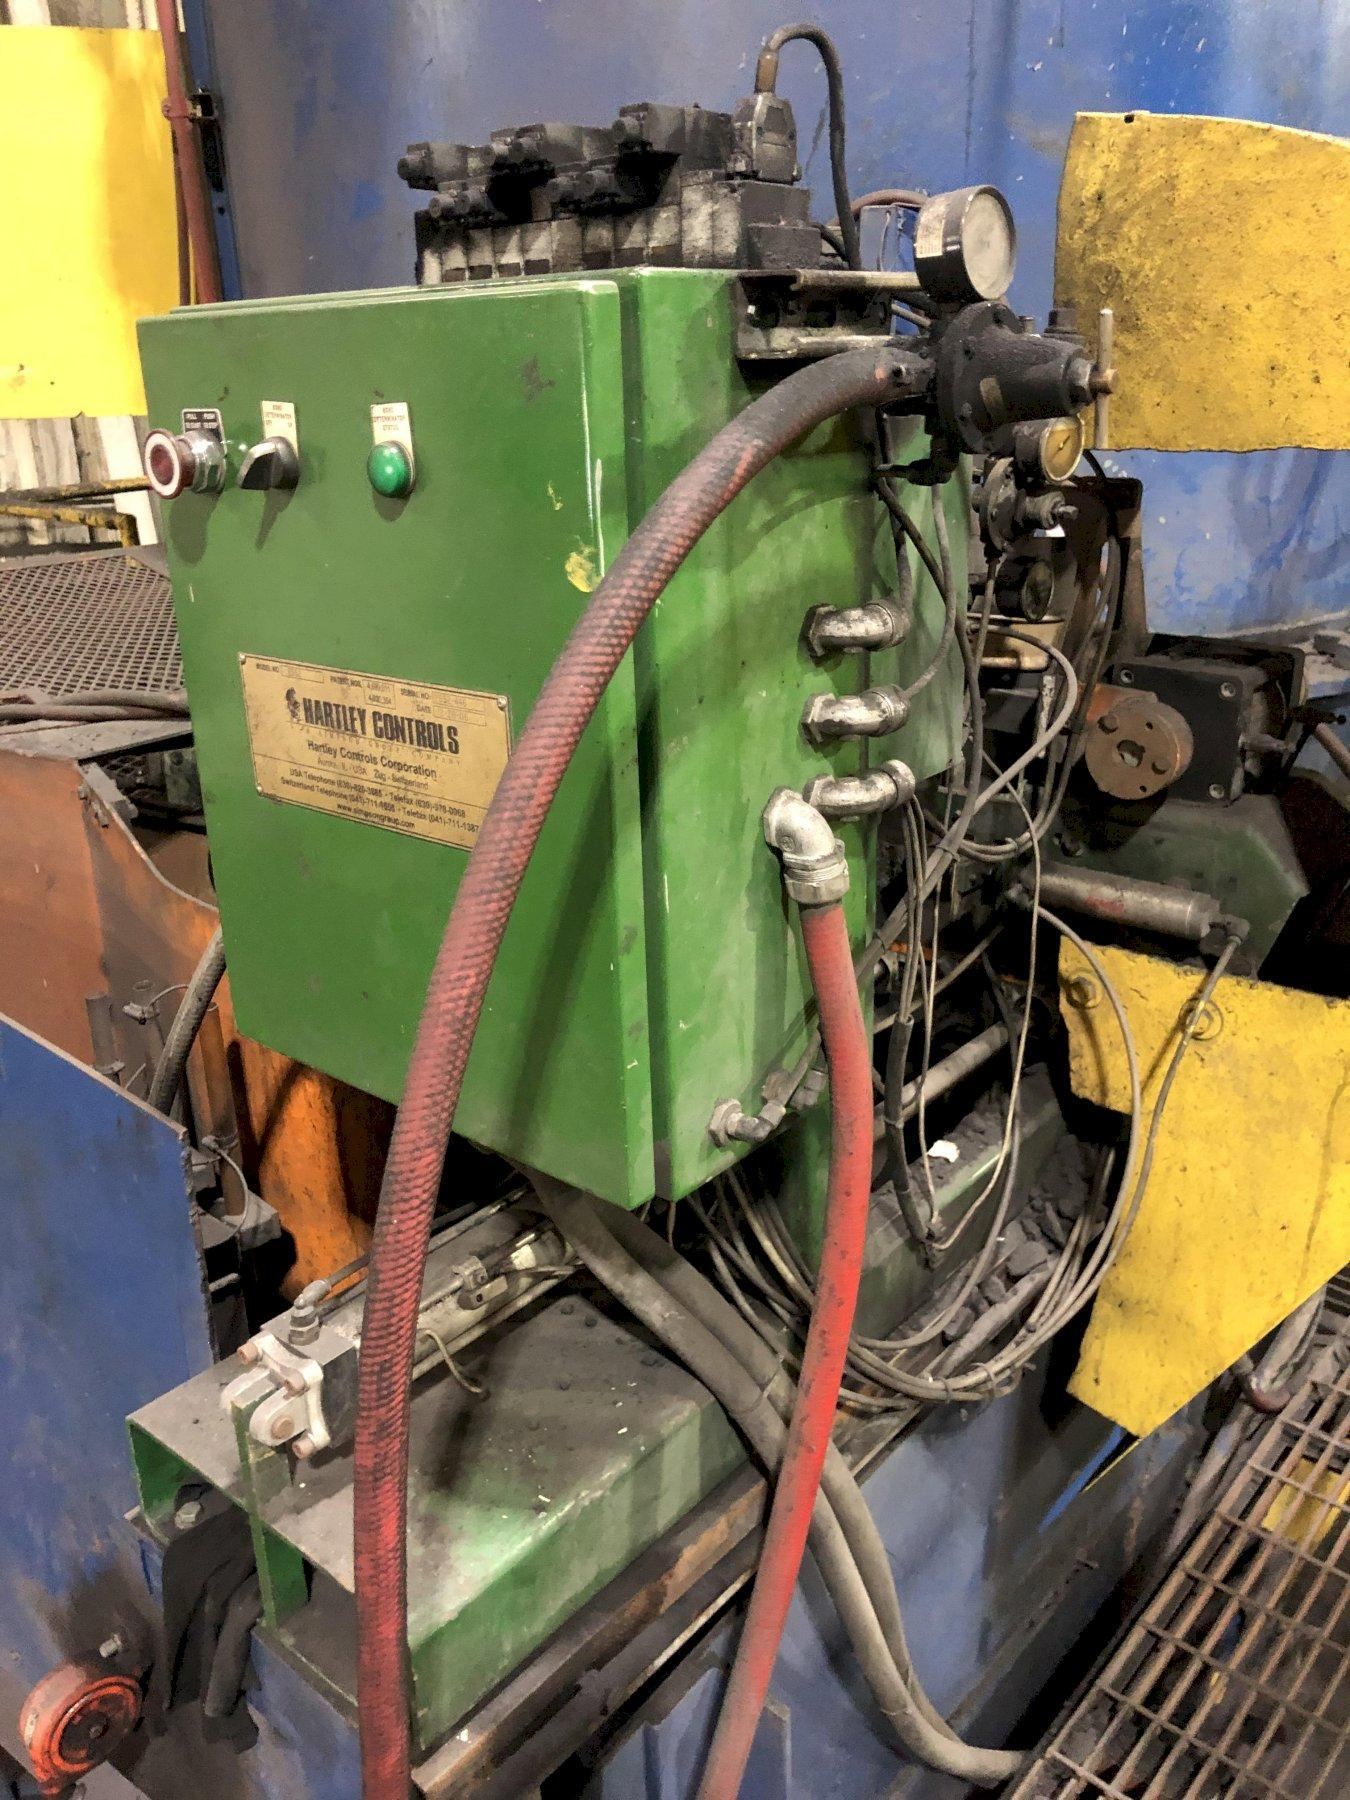 B AND P MODEL 100B250 250 HP HEAVY DUTY SPEED MULLER WITH DUST HOOD, BATCH HOPPER, 250 HP MOTOR, BENISHAW SOFT START SYSTEM: NOTE THE GEARBOX IS MAKING NOISE AND MAY NEED TO BE REPLACED